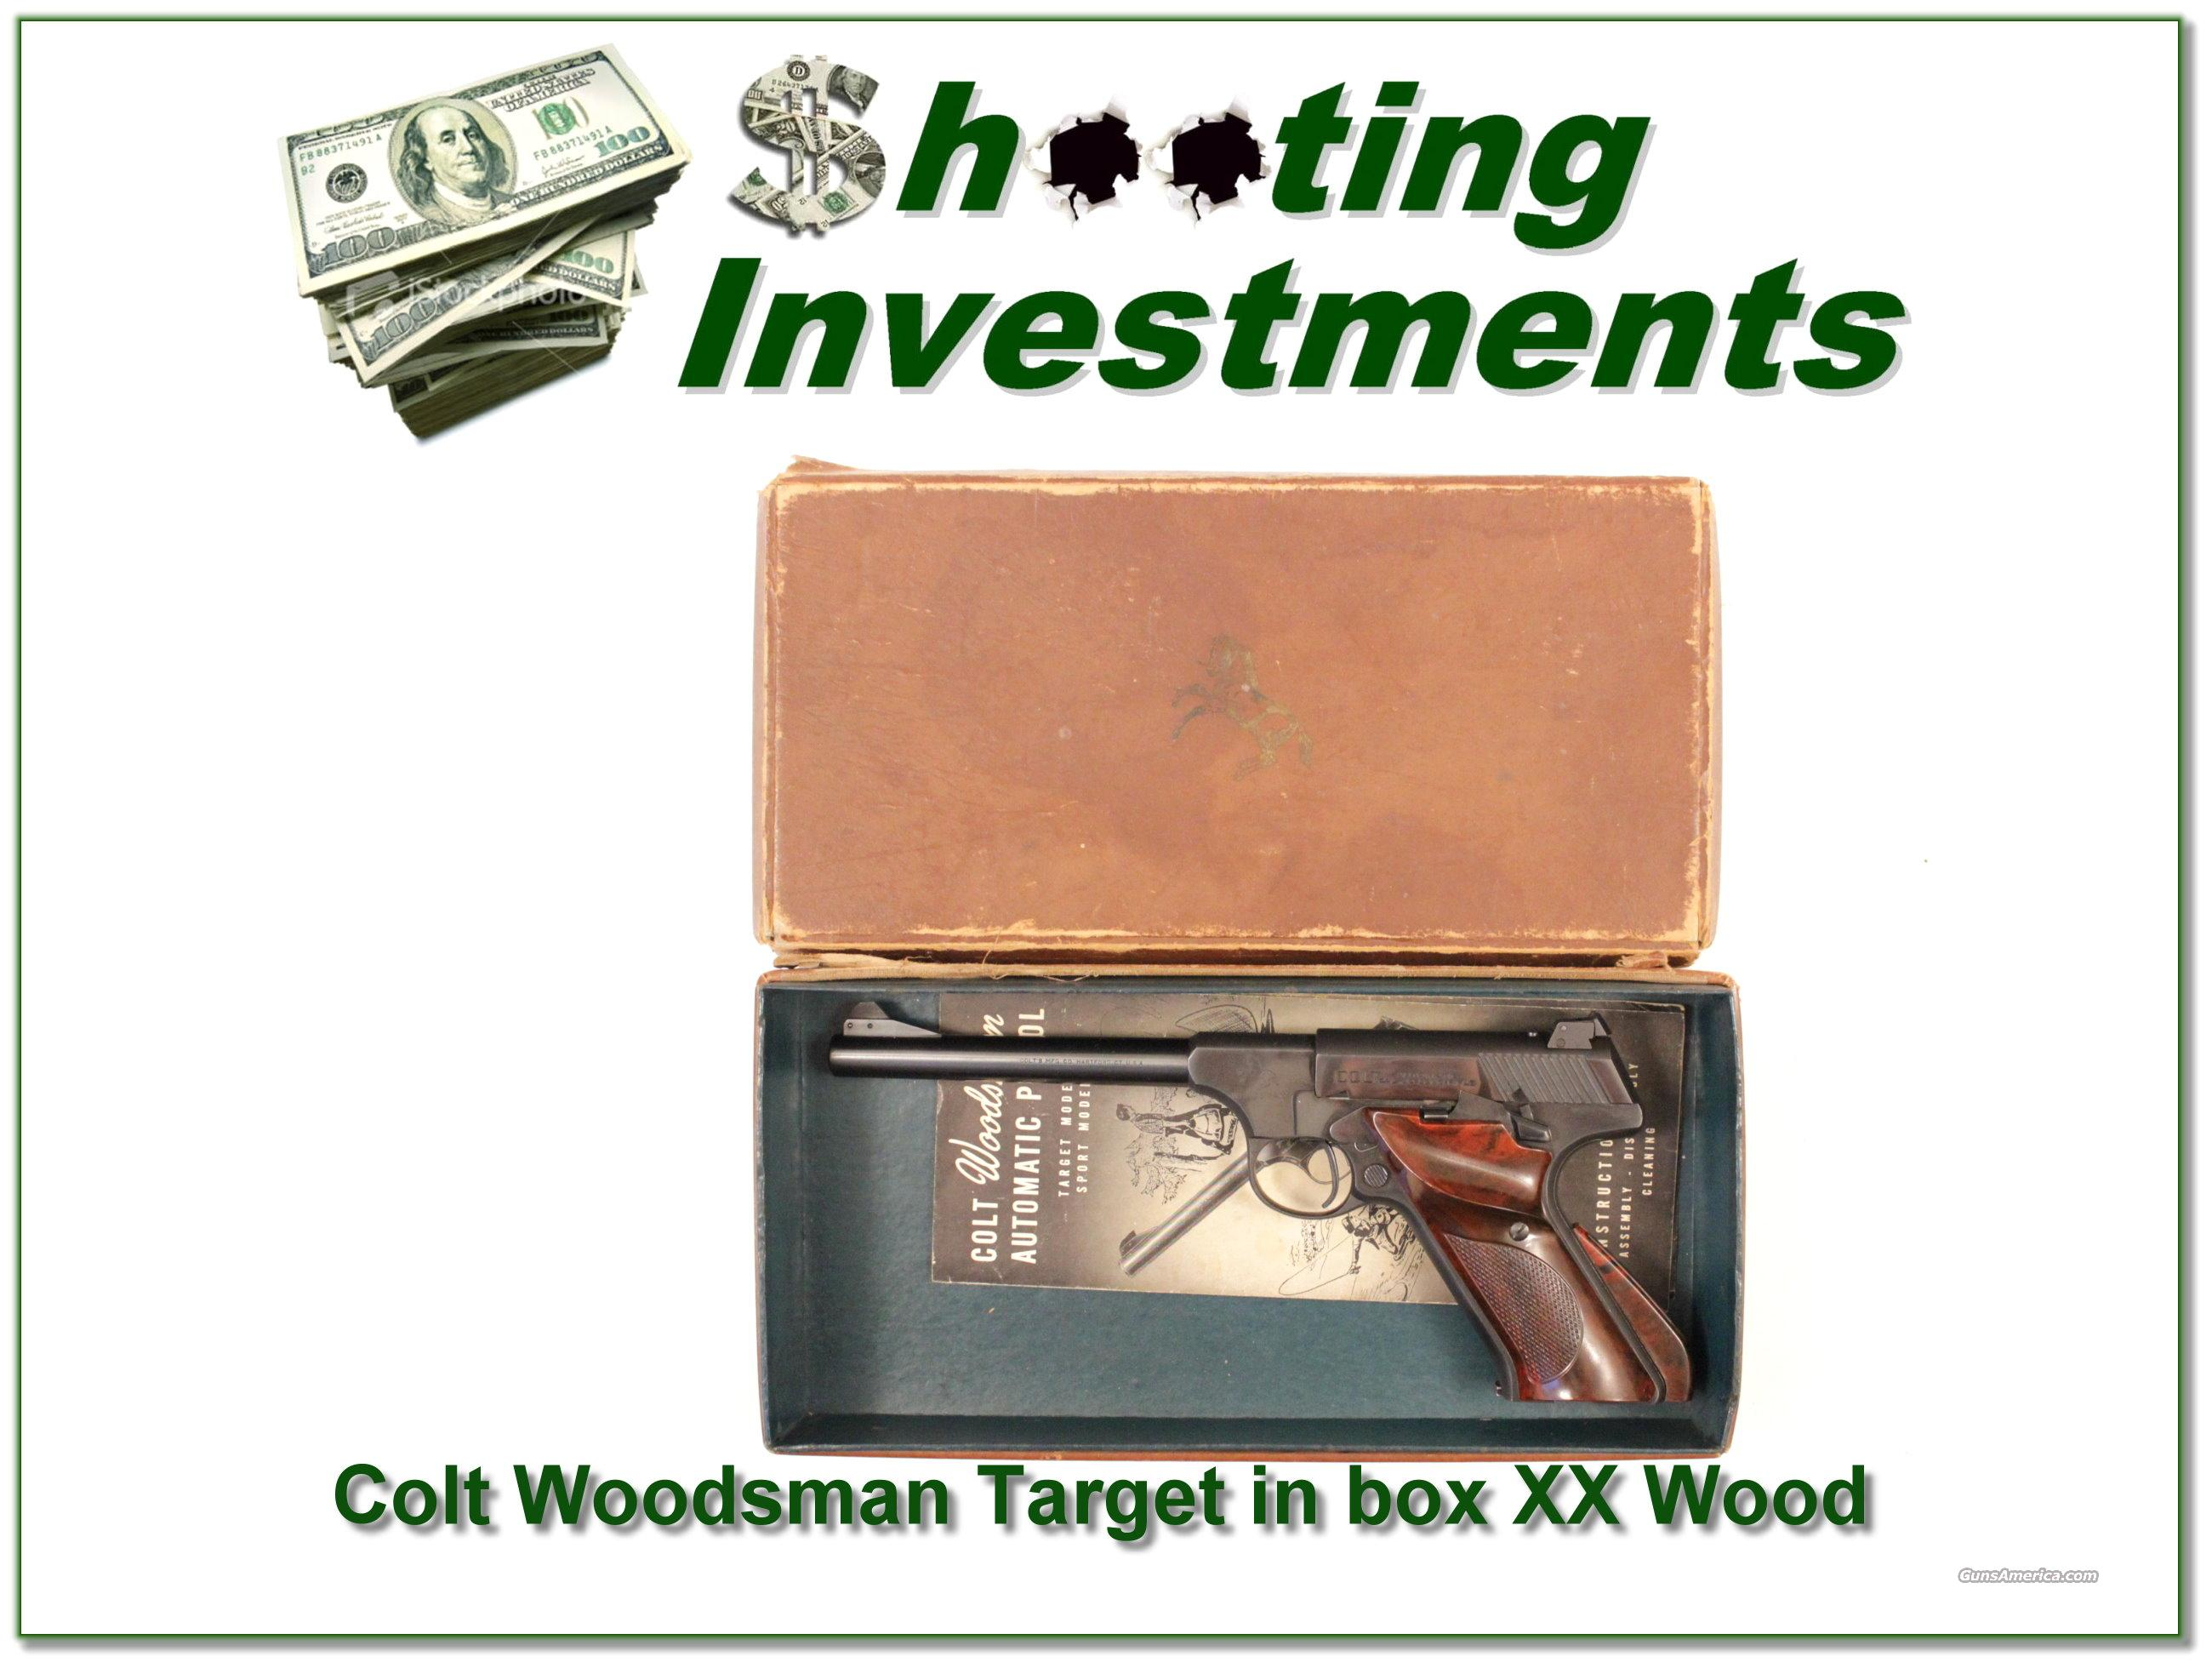 Colt Woodsman Target Model 1950 in box with manual  Guns > Pistols > Colt Automatic Pistols (22 Cal.)